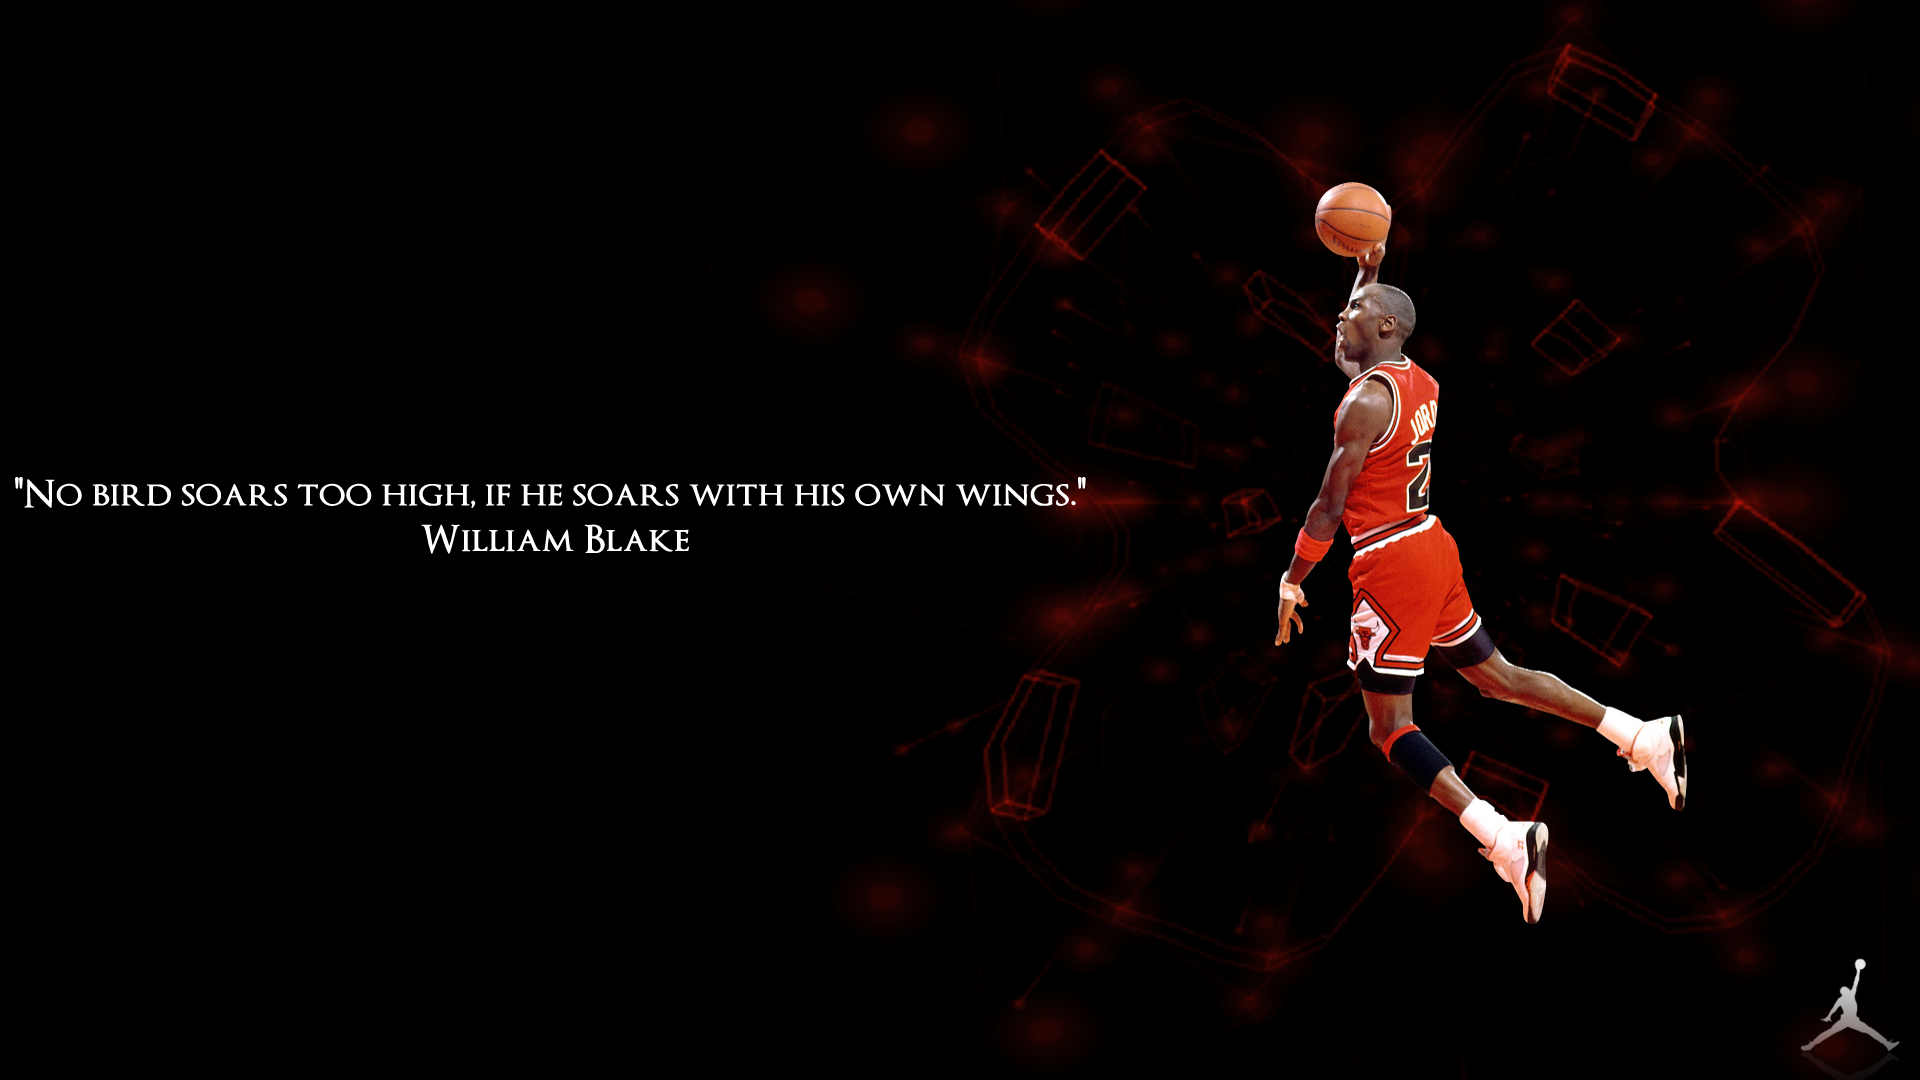 """No Birds Soars Too High, If He Soars With His Own Wings"" - William Blake ~ Basketball Quotes"